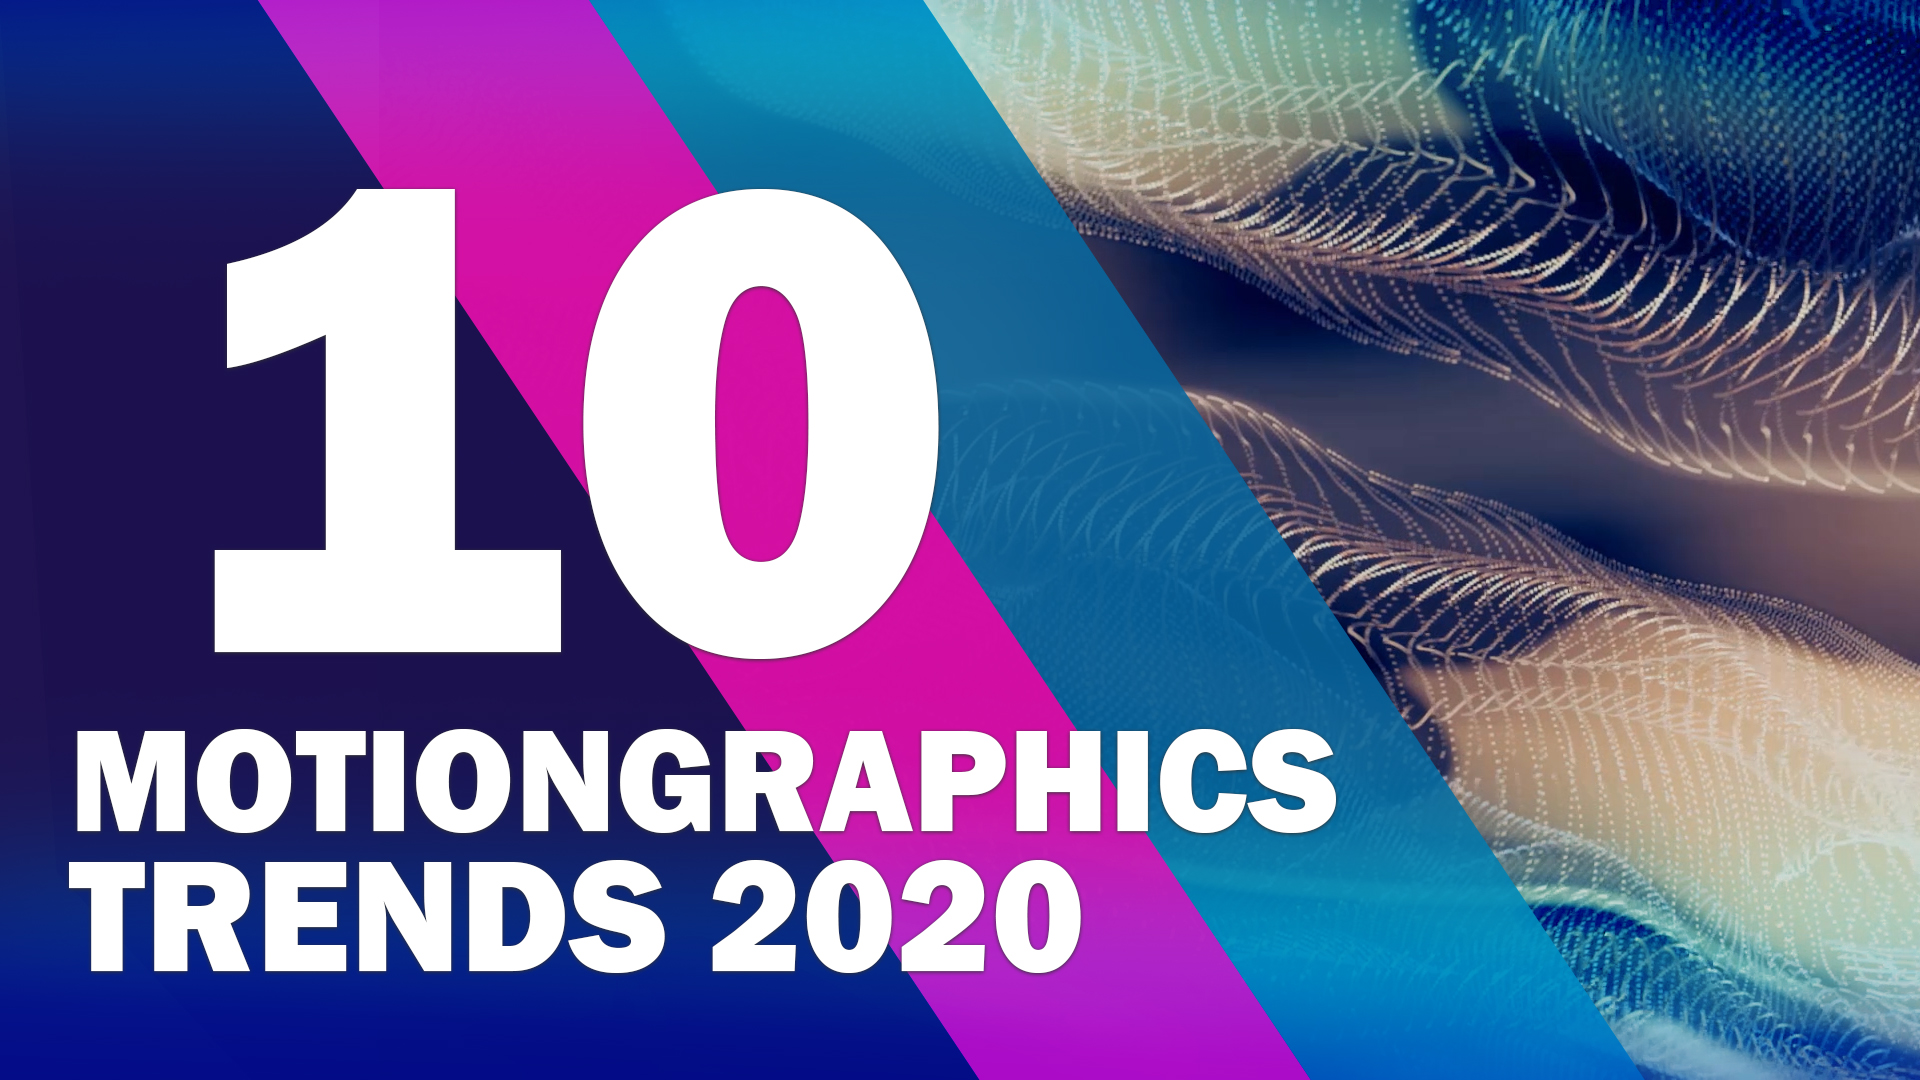 TOP 10 MOTION GRAPHICS TRENDS